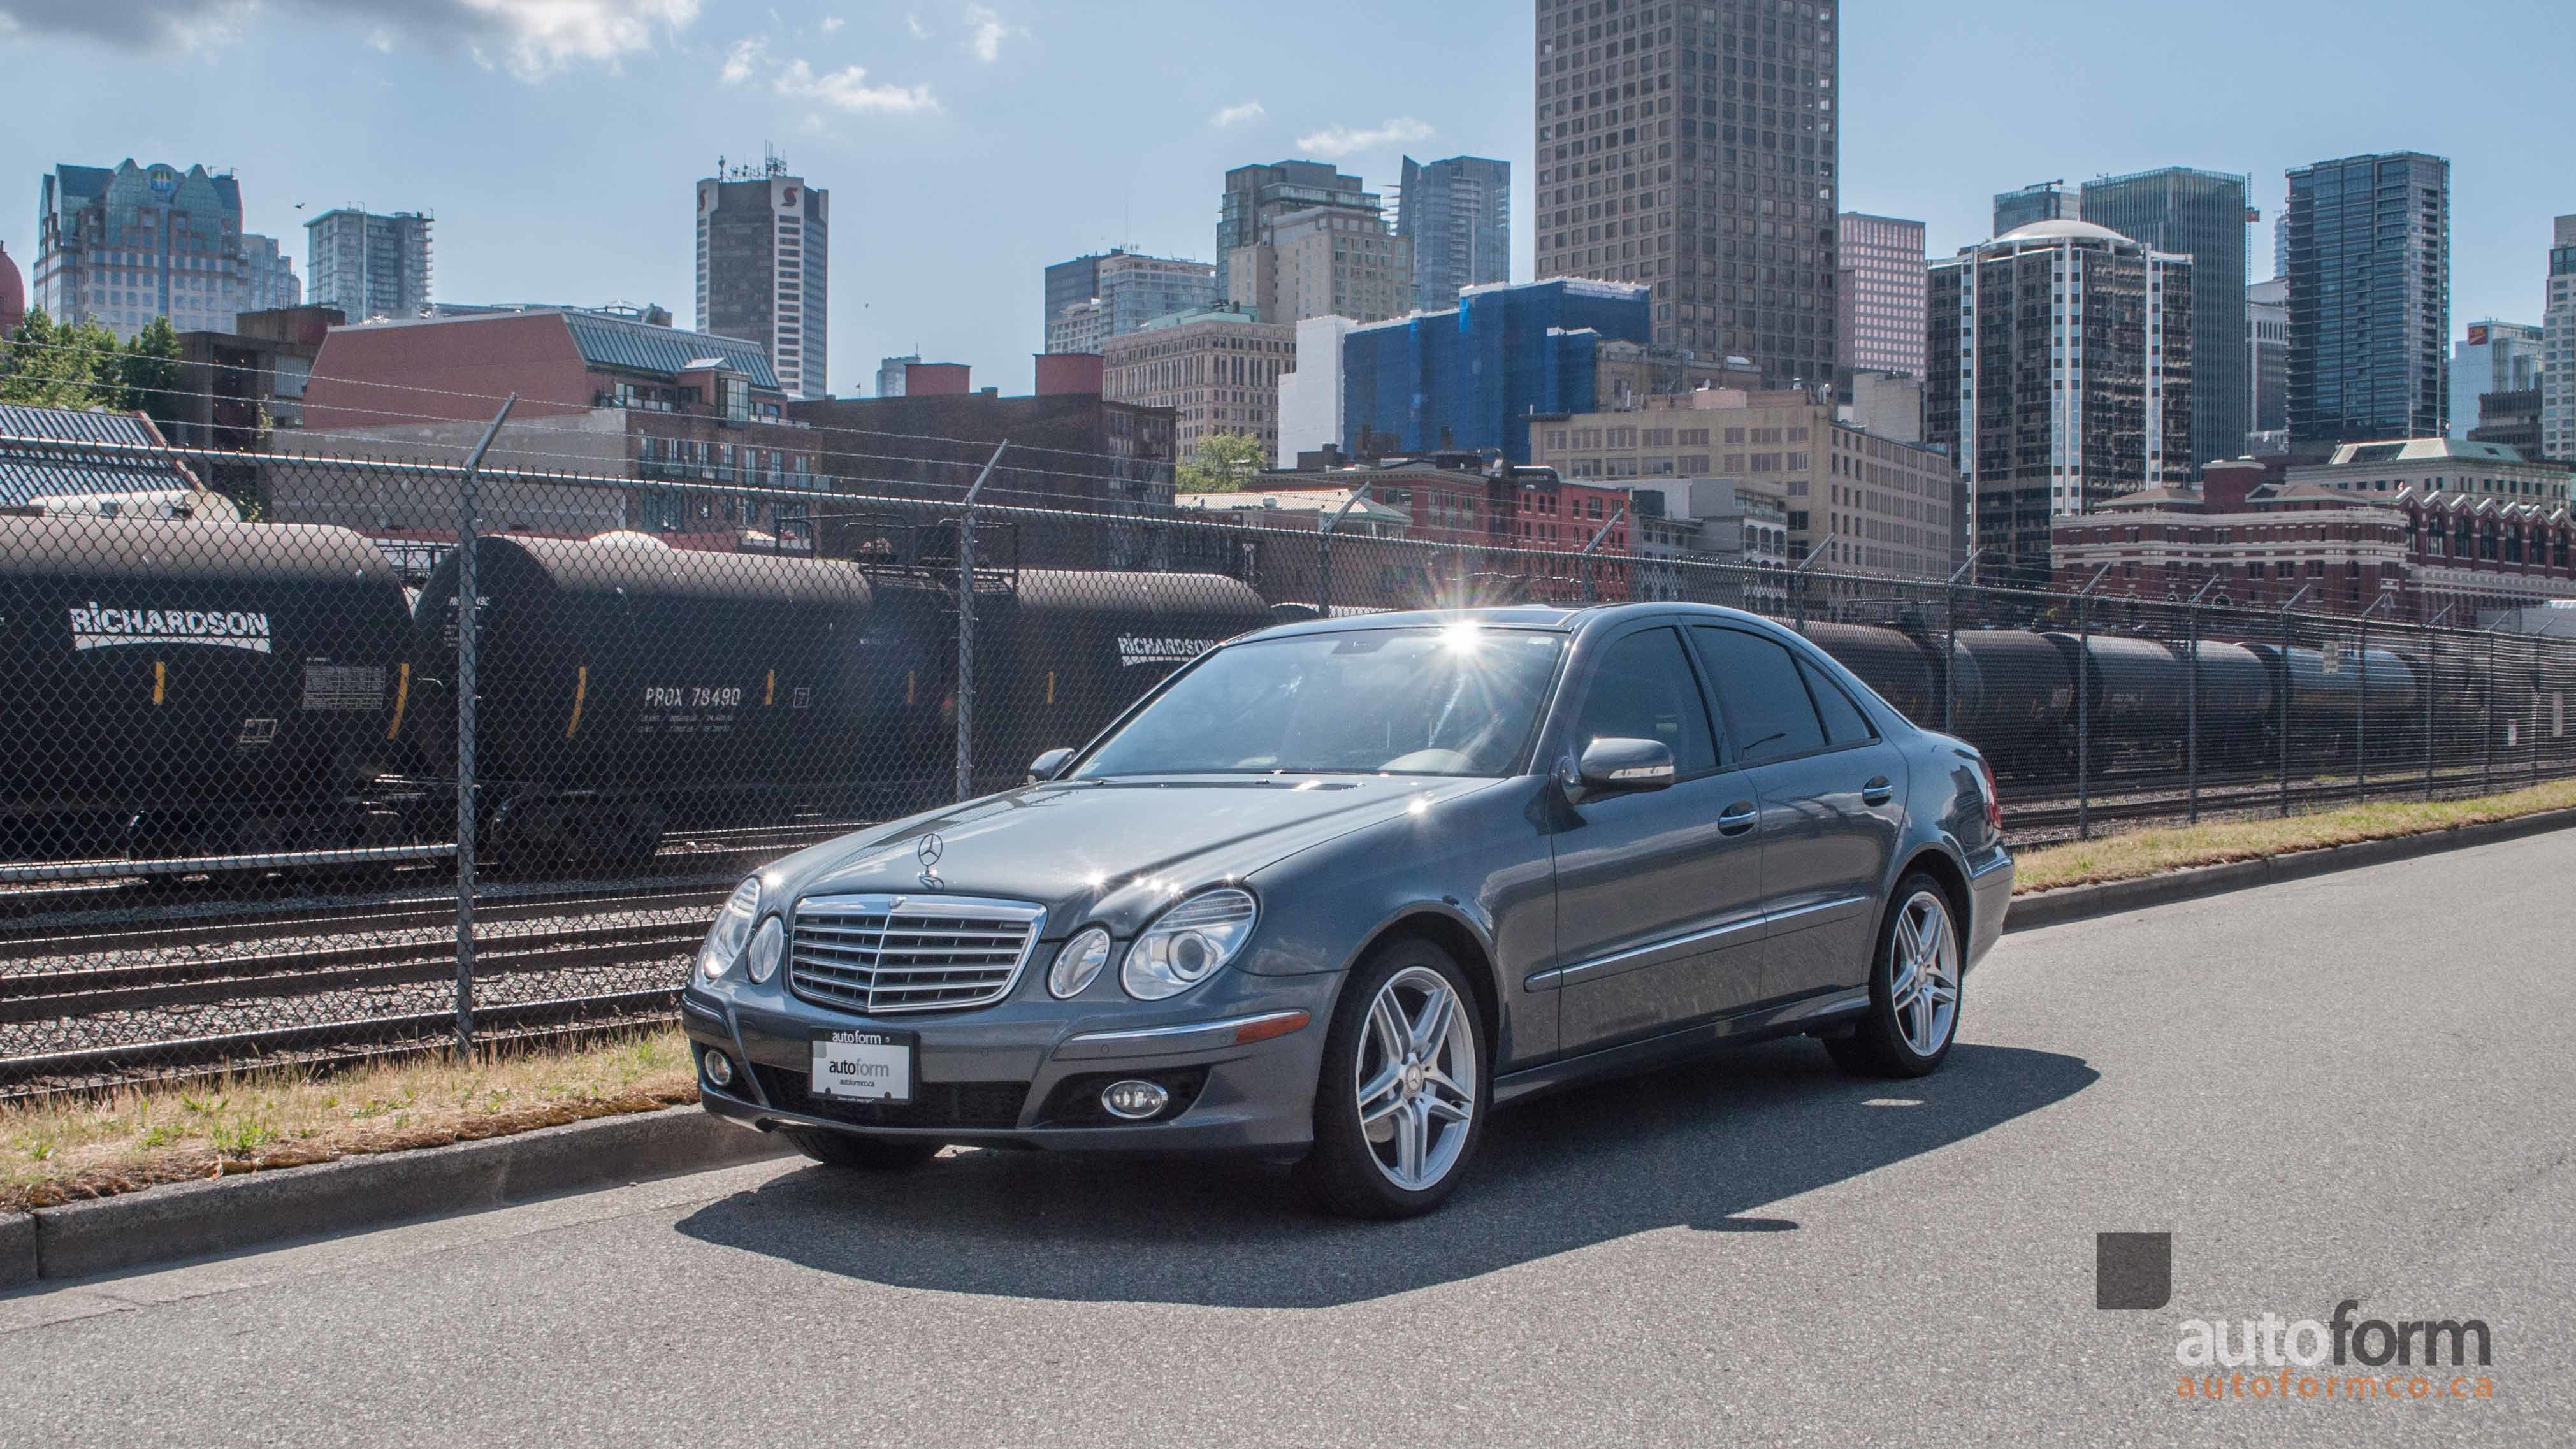 performance saloon the behind benz e wheel review class driving mercedes and